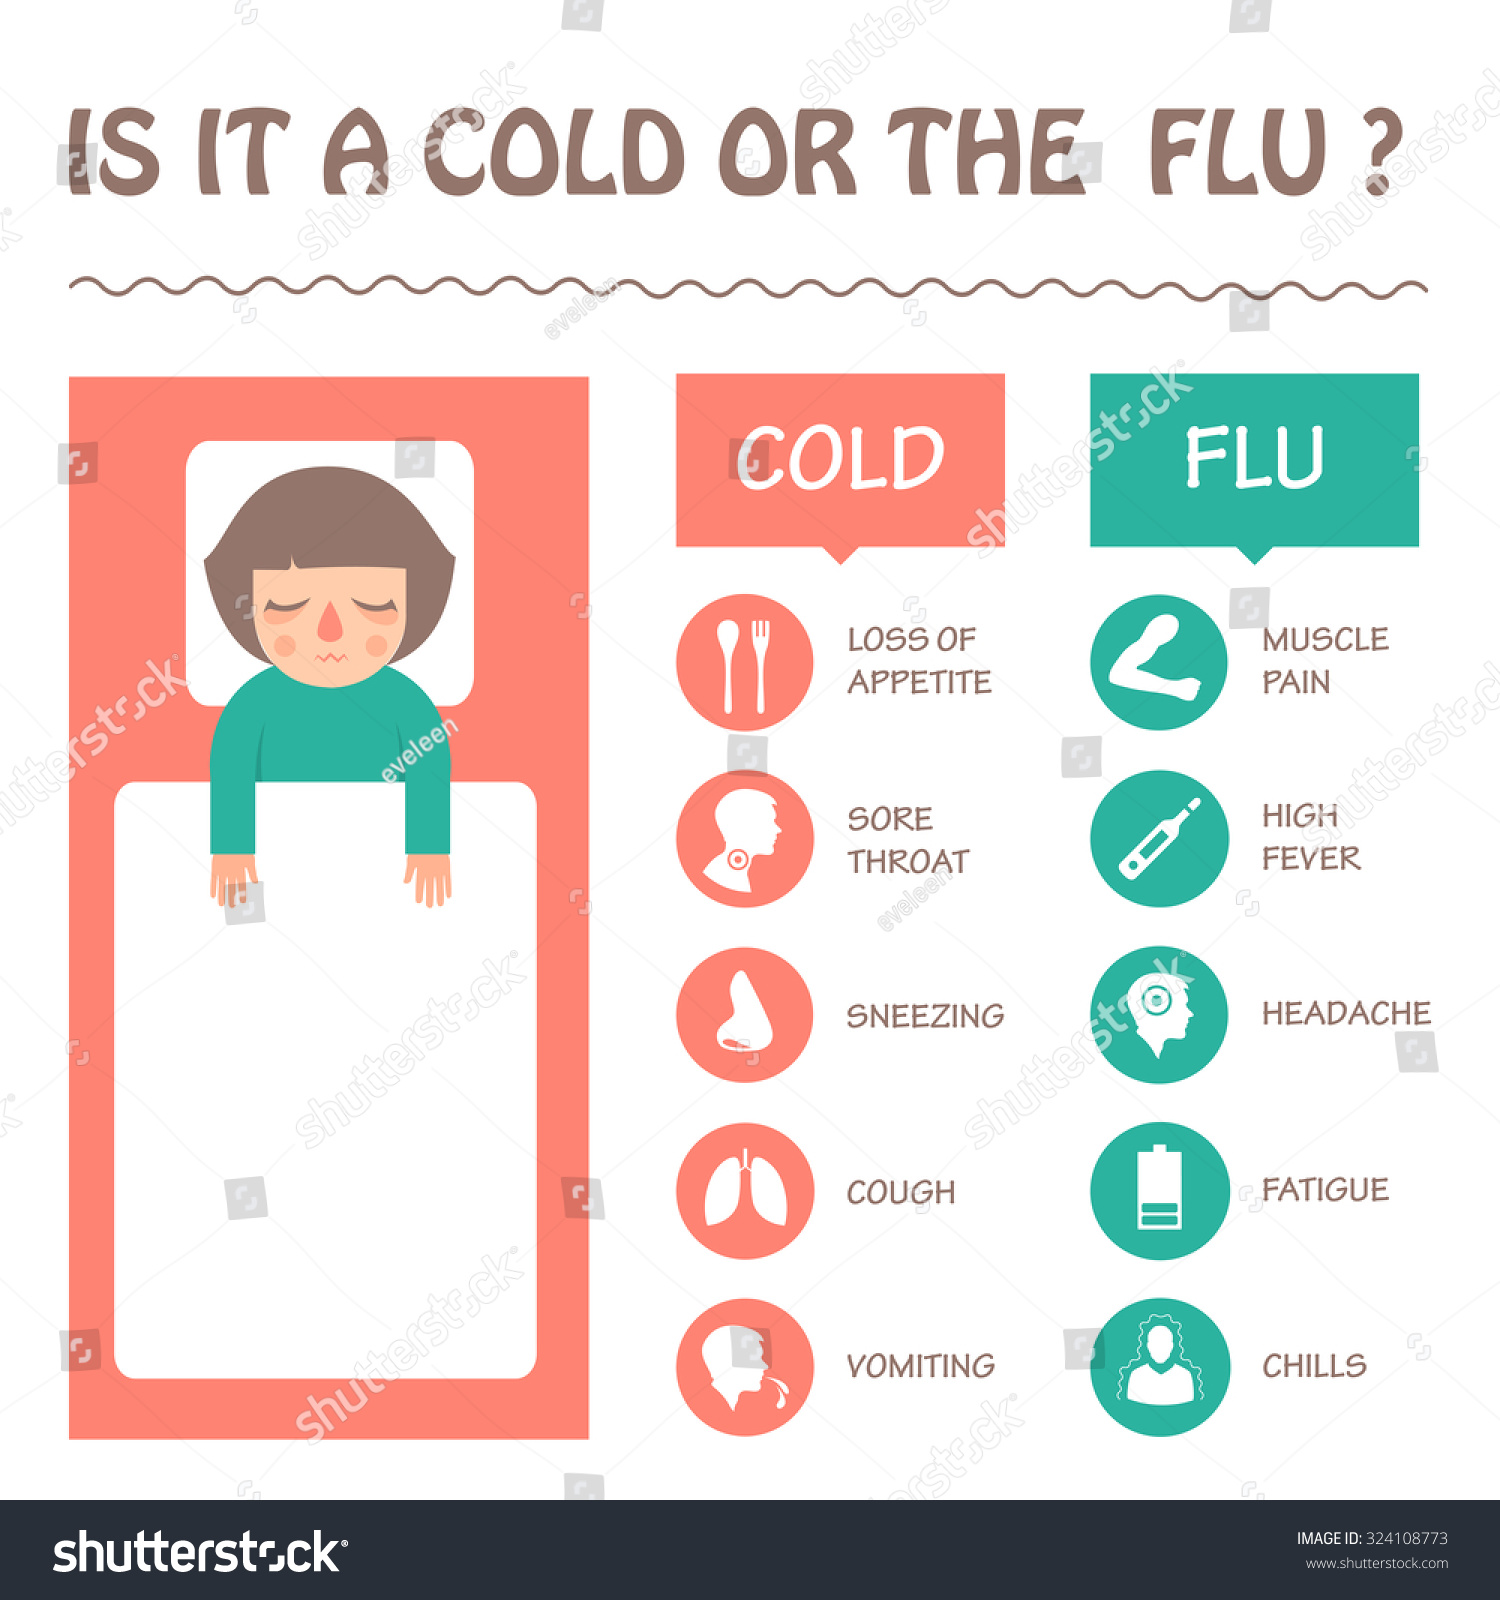 Flu Cold Disease Symptoms Infographic Vector Stock Vector. Nothing Signs. Catholic Church Signs Of Stroke. Glycosuria Signs. Prehospital Stroke Signs. Body Shapes Signs. Clinical Signs. Pregnant Signs Of Stroke. Simian Signs